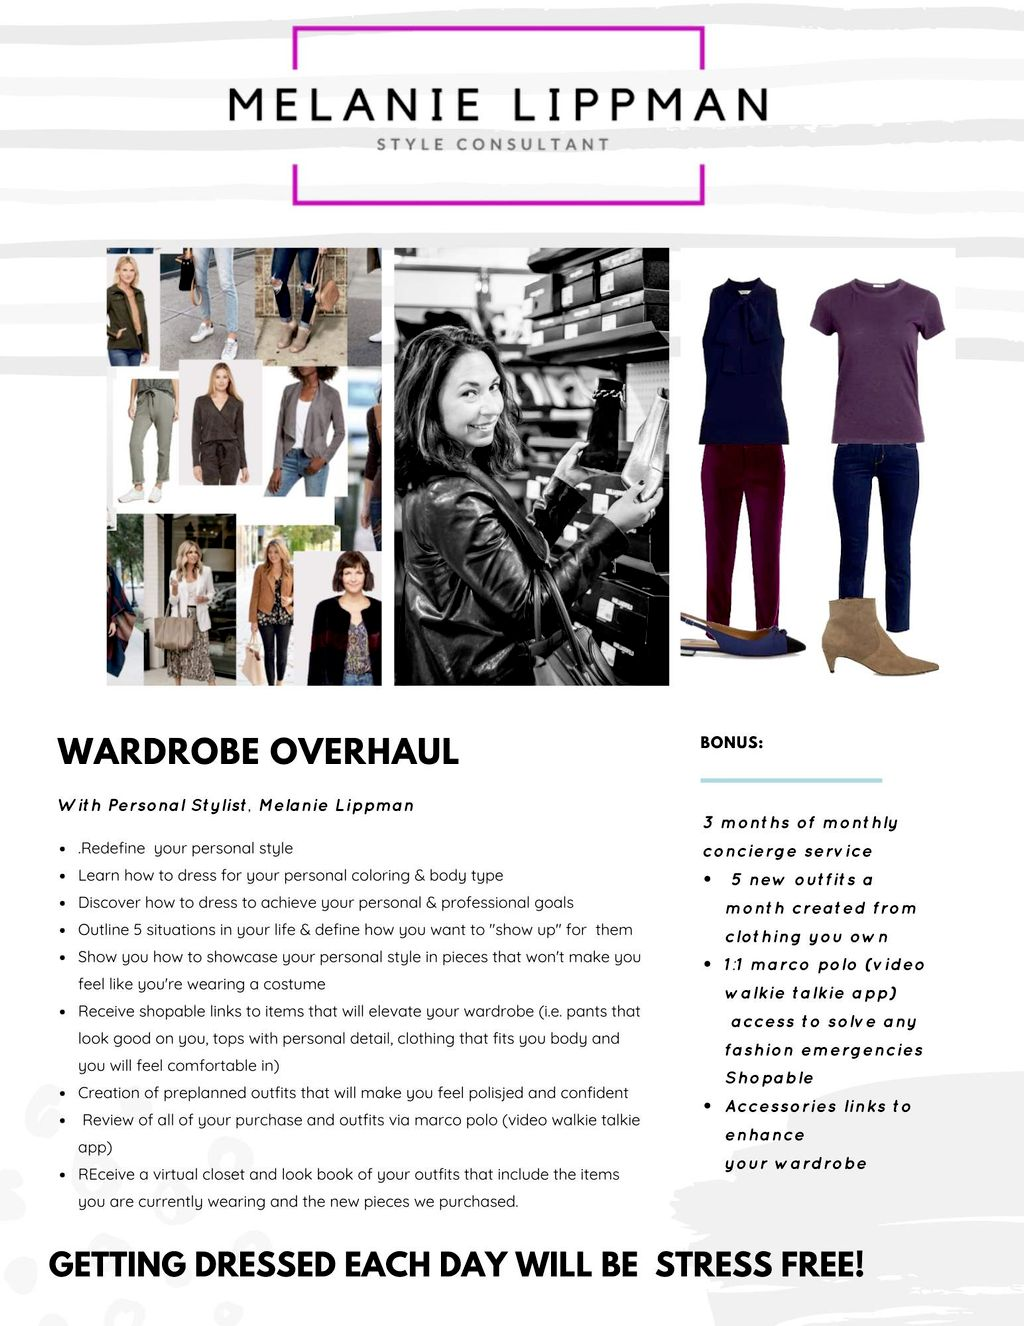 Gift Certificate for a Virtual Wardrobe Overhaul